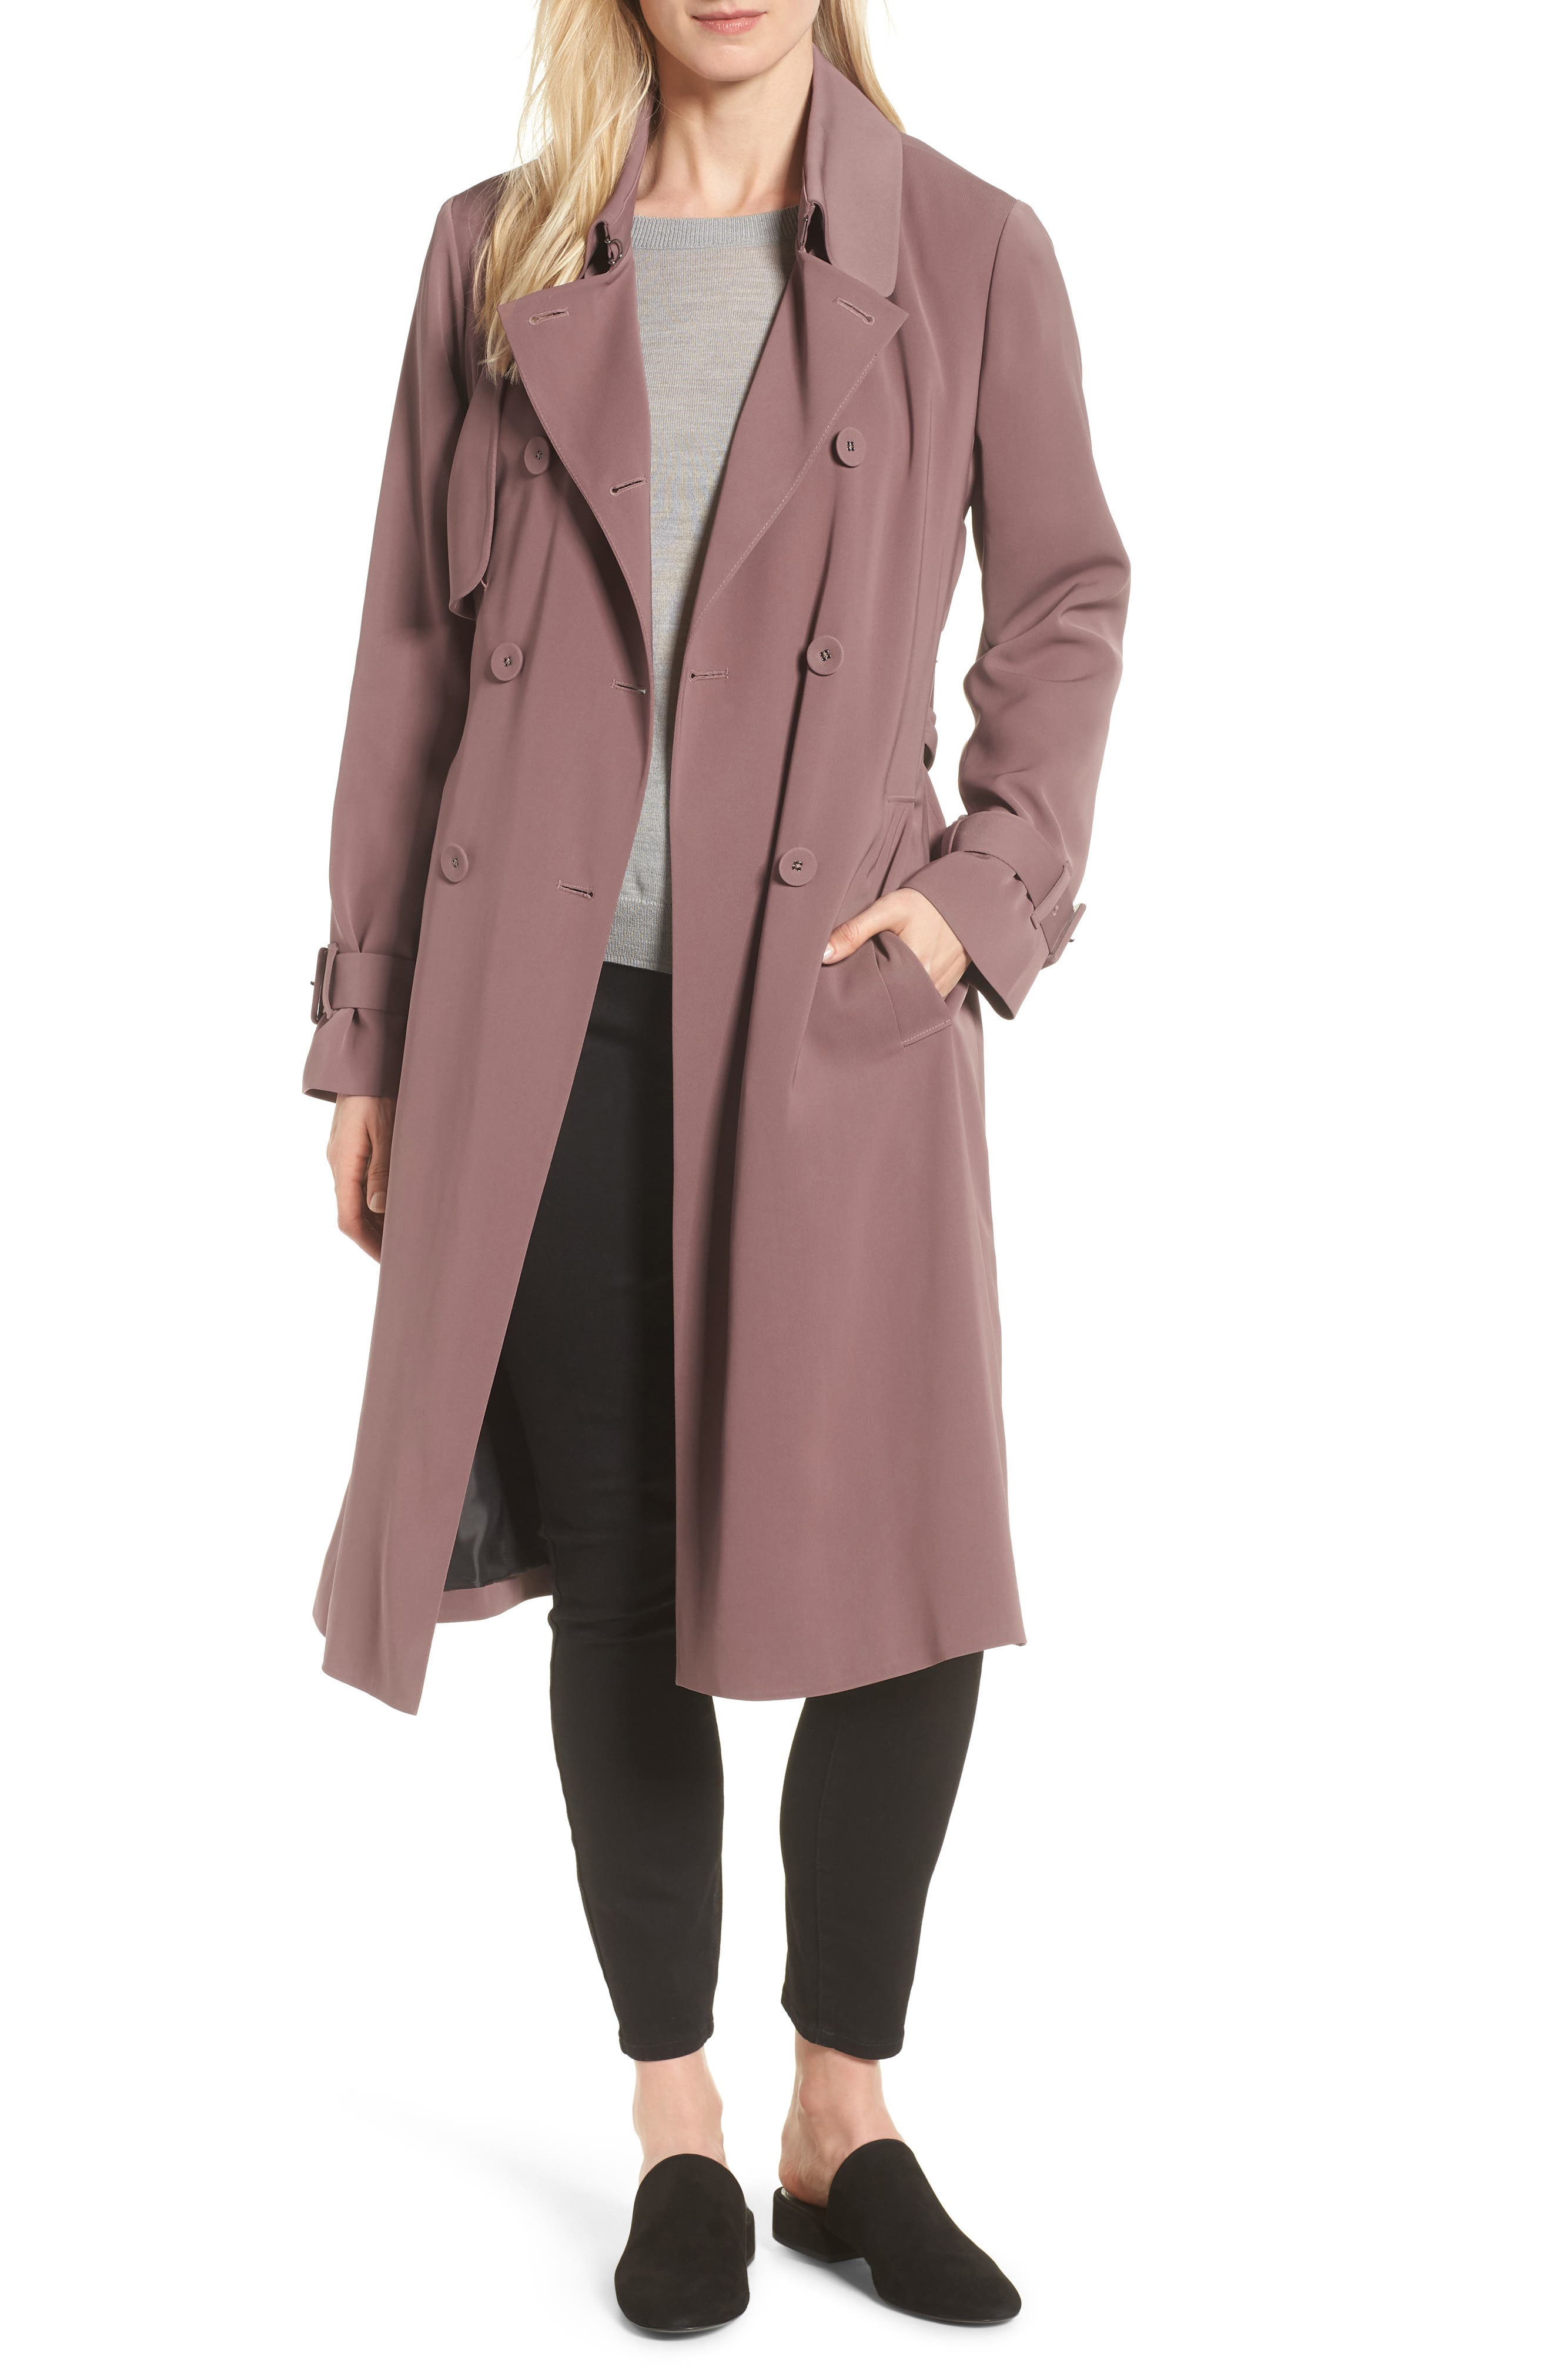 London Fog Girls Single Breasted Trench Coat